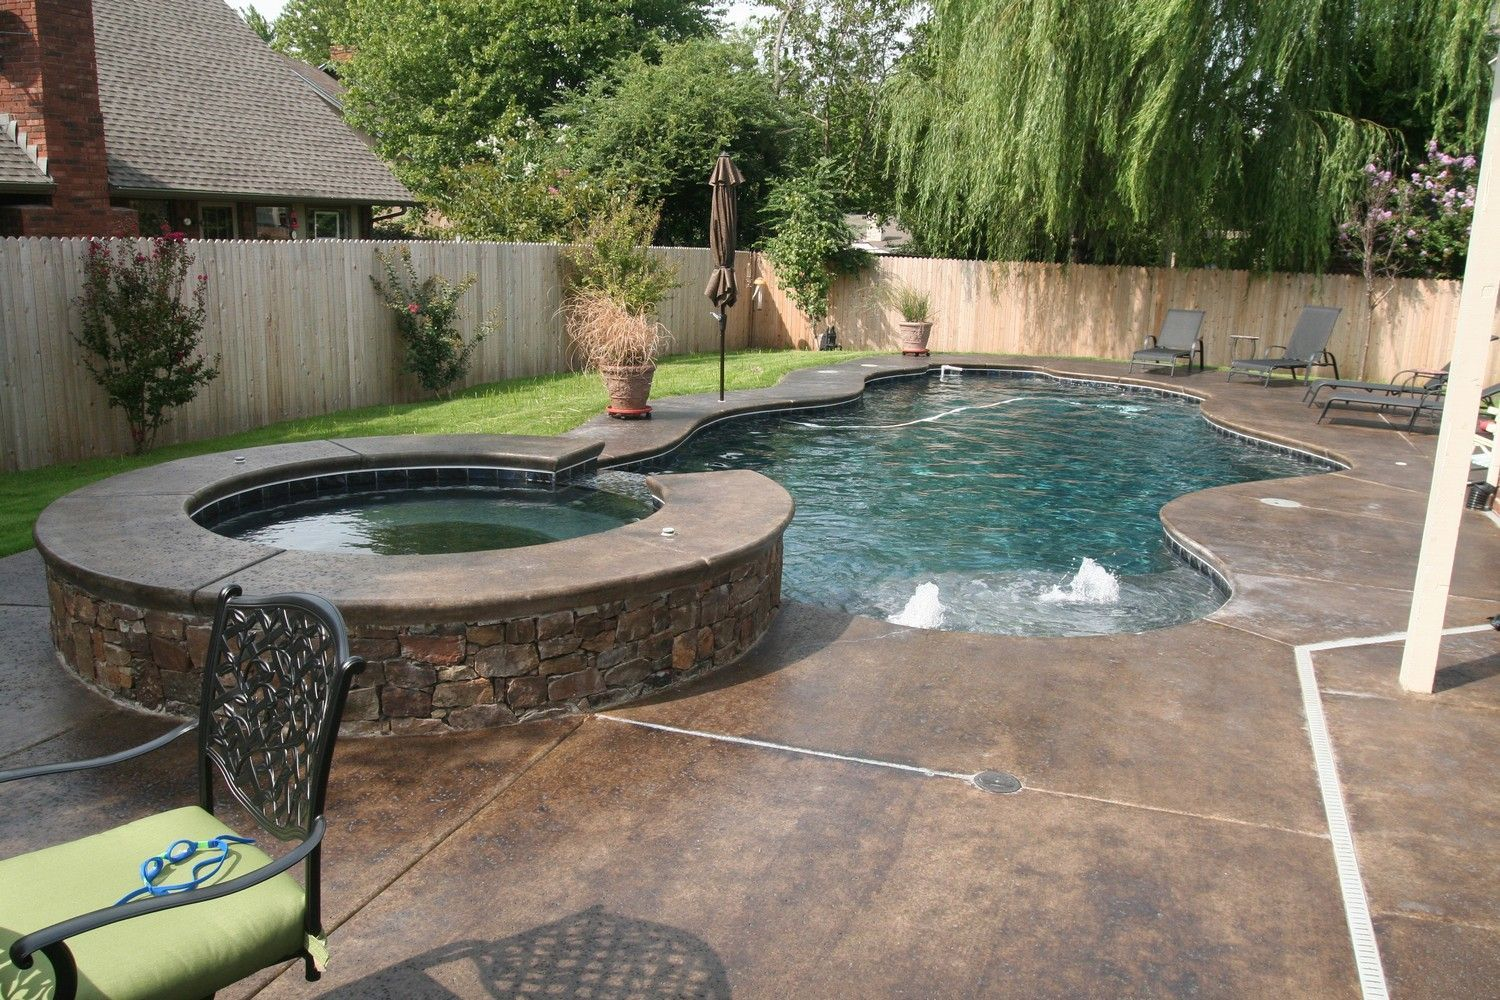 Small Backyard Free Form Pool With Jacuzzi | outdoor ...